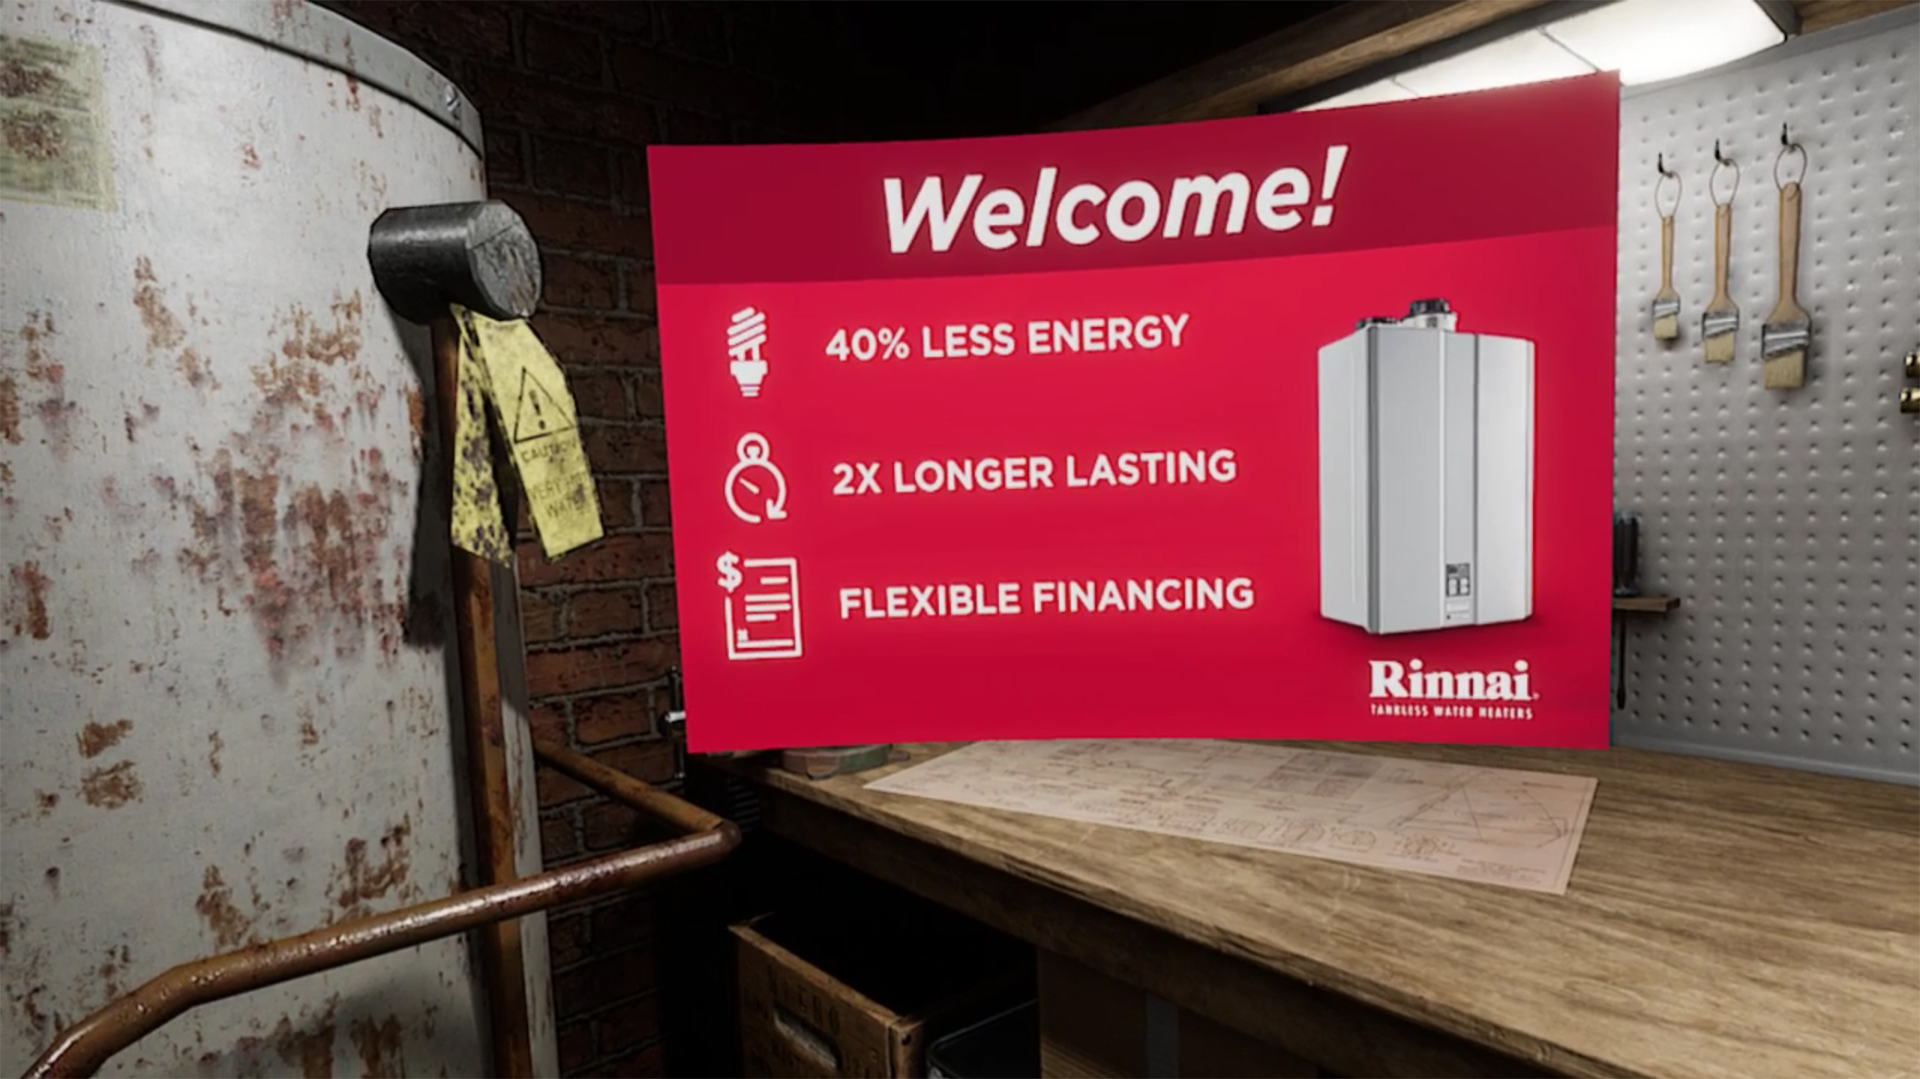 Rinnai Yank The Tank VR Experience - Using VR to Train and Educate by Groove Jones